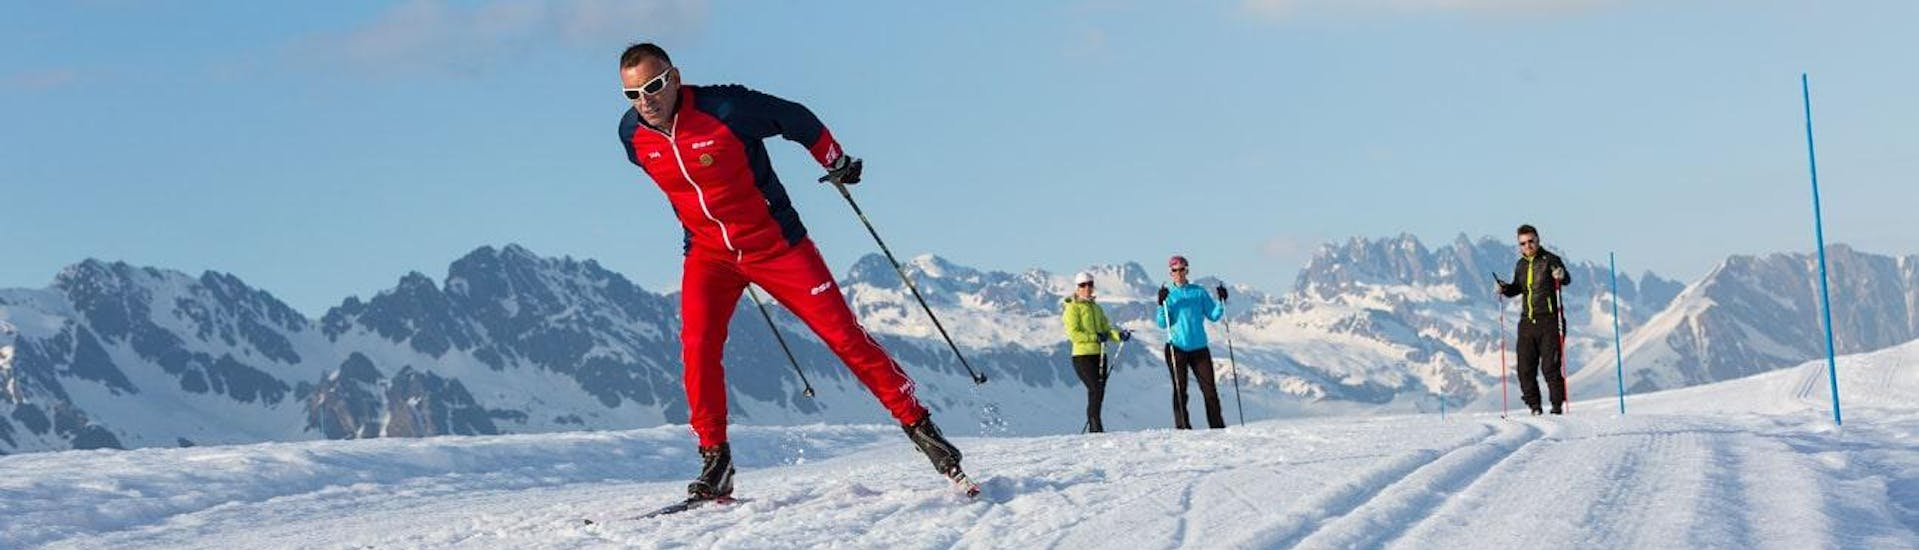 Two skiers are observing their cross-country skiing instructor of the ski school ESF Chamonix during their Cross-Country Skiing Lessons for Adults - All Levels.